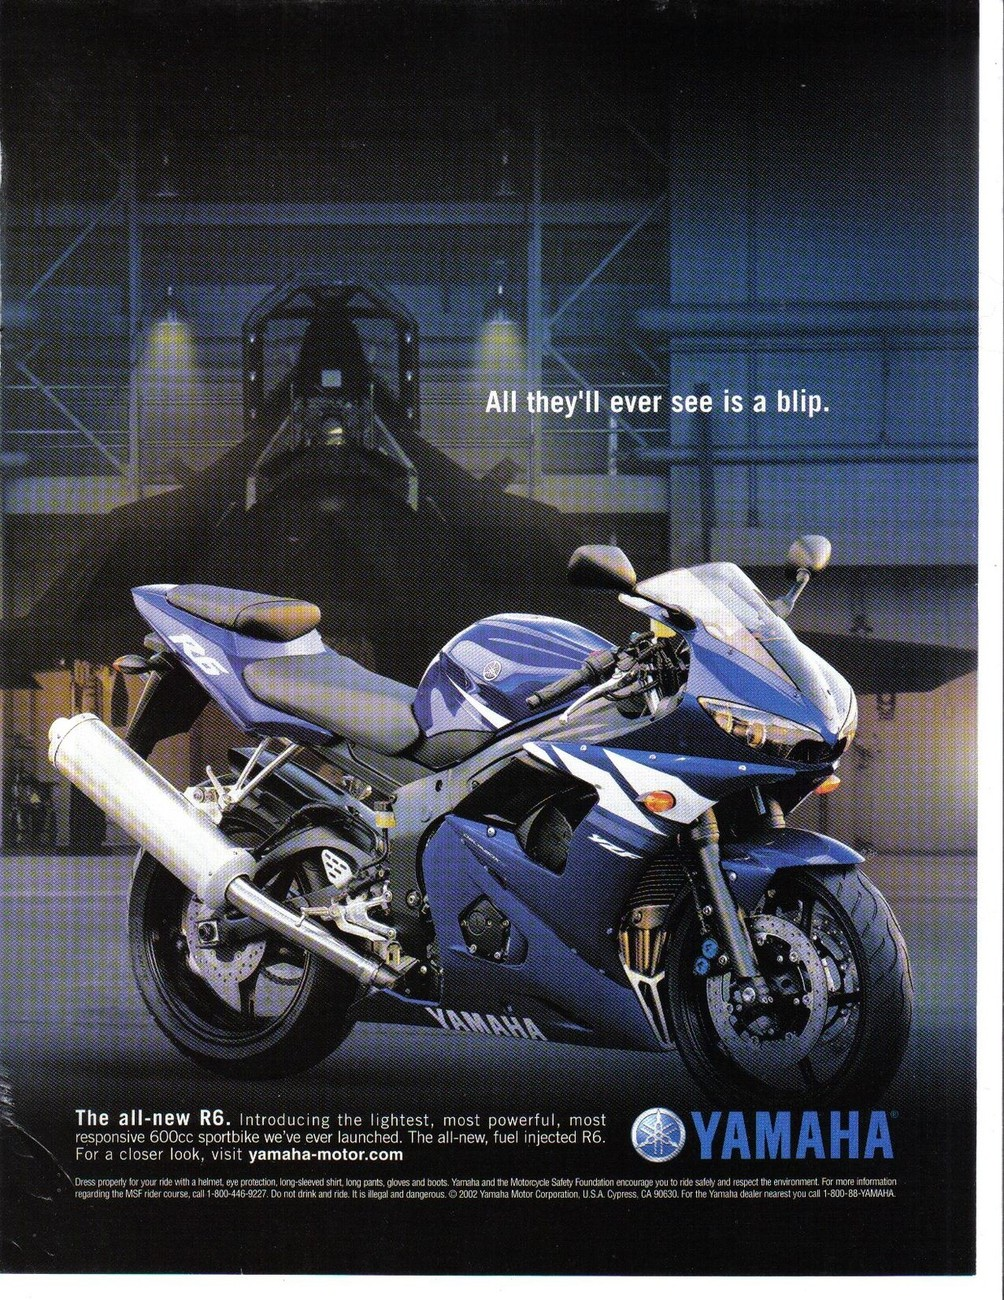 Primary image for Yamaha Ad 2002 All they'll ever see is a blip Full Page Color Print Ad Very Good